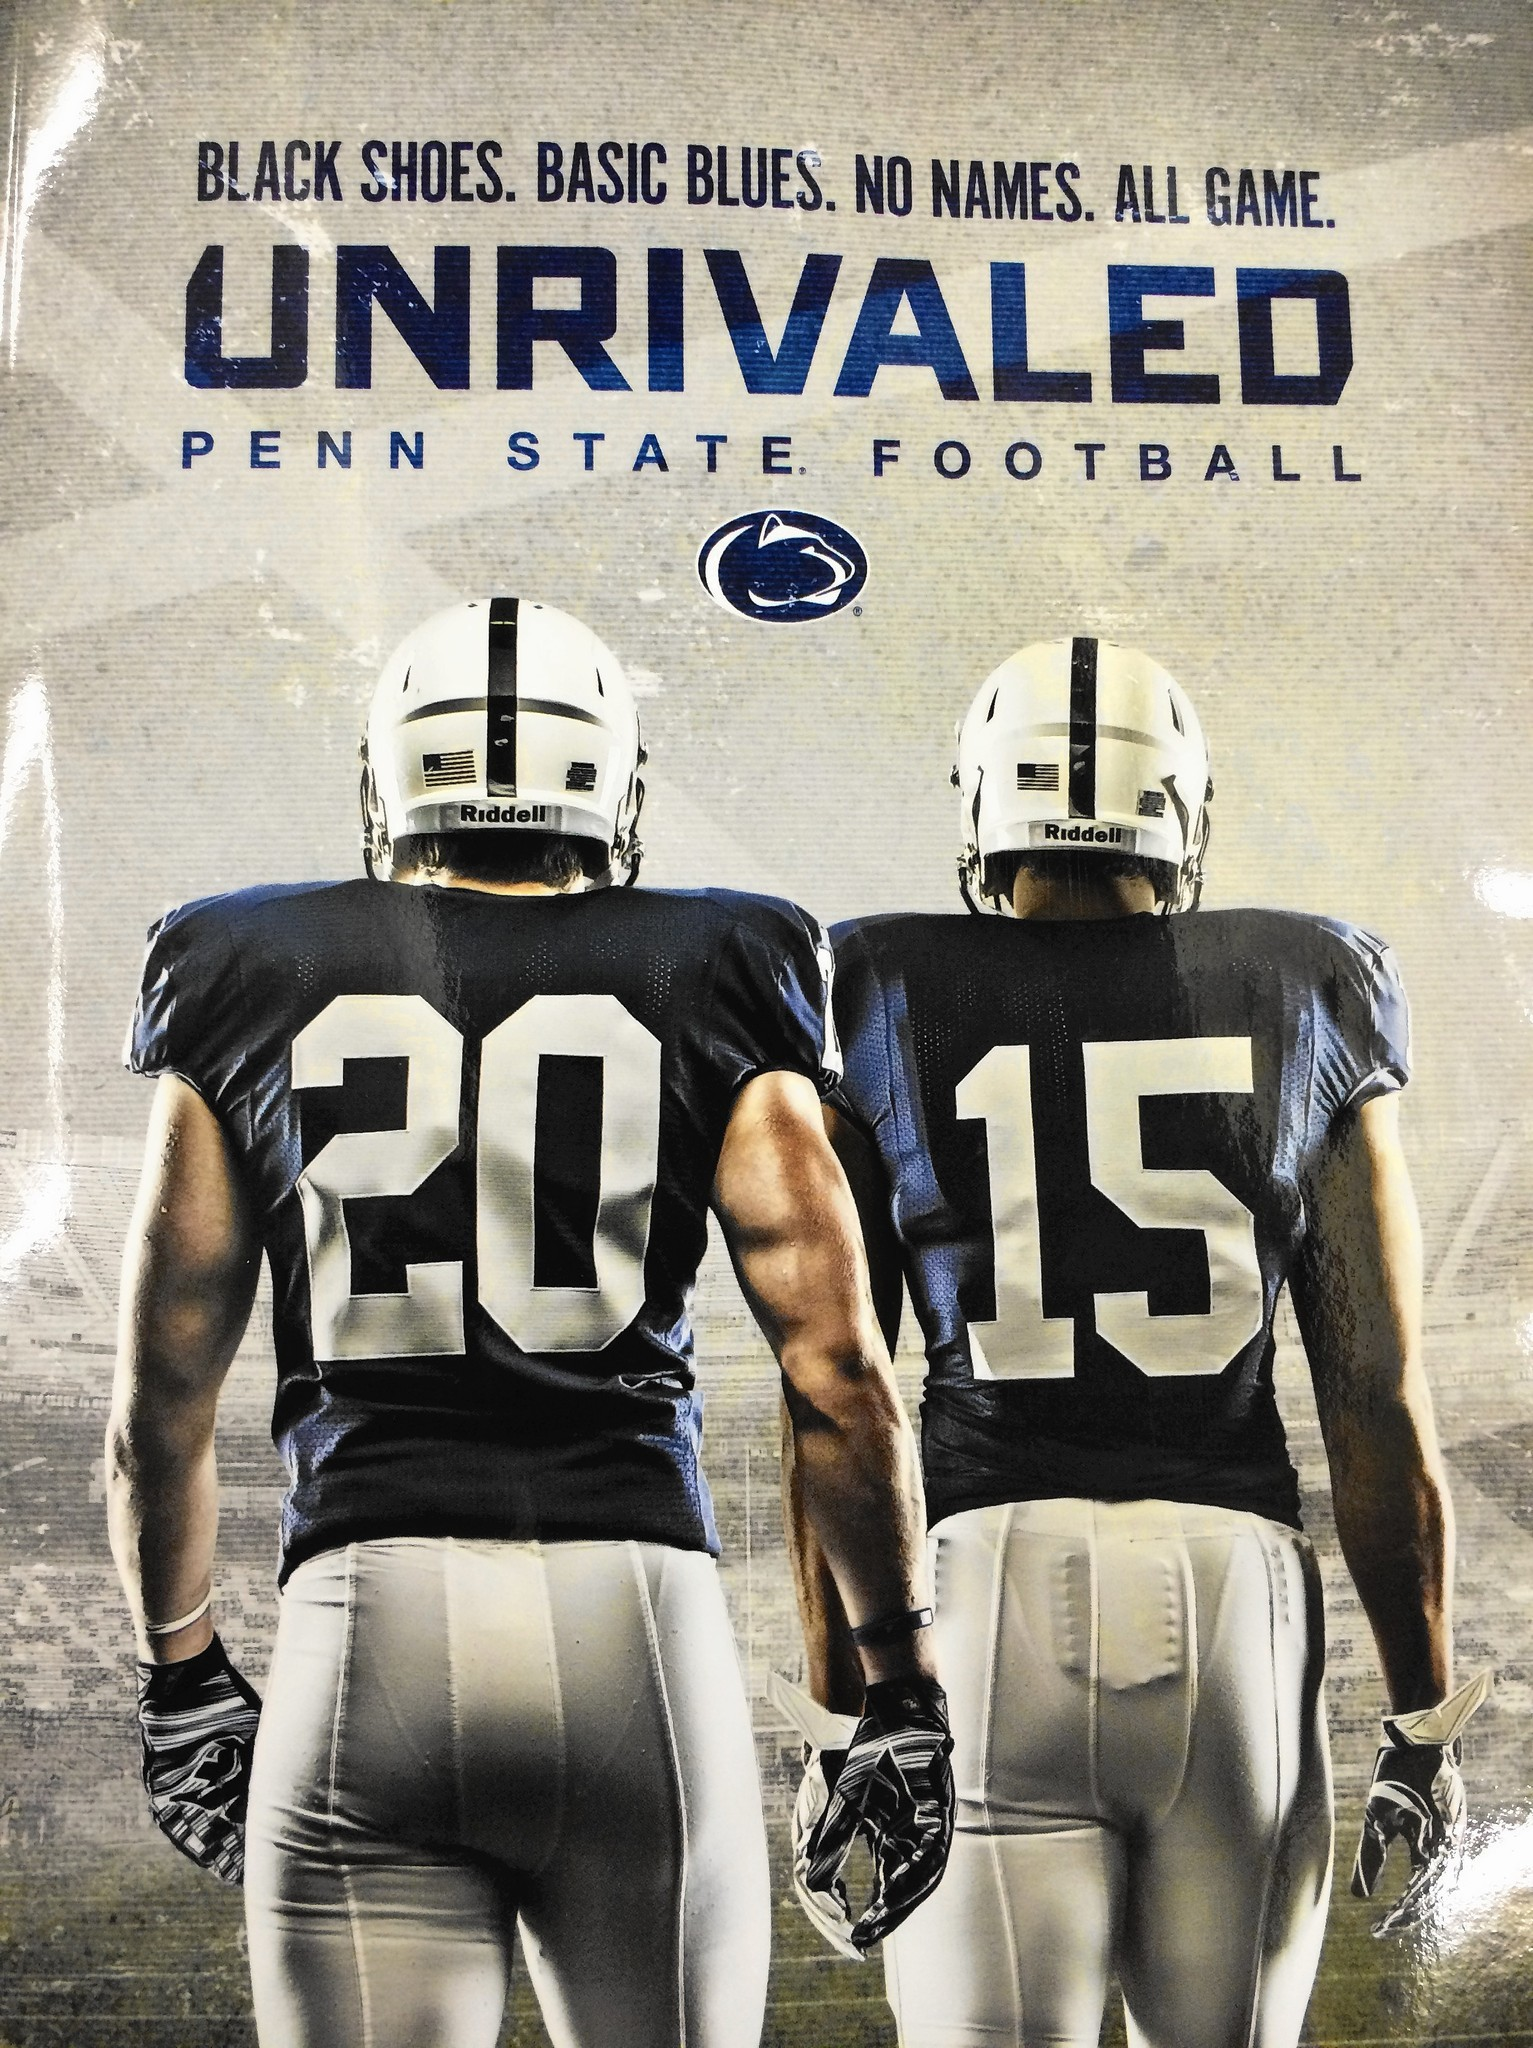 who are the penn state football team u0026 39 s rivals